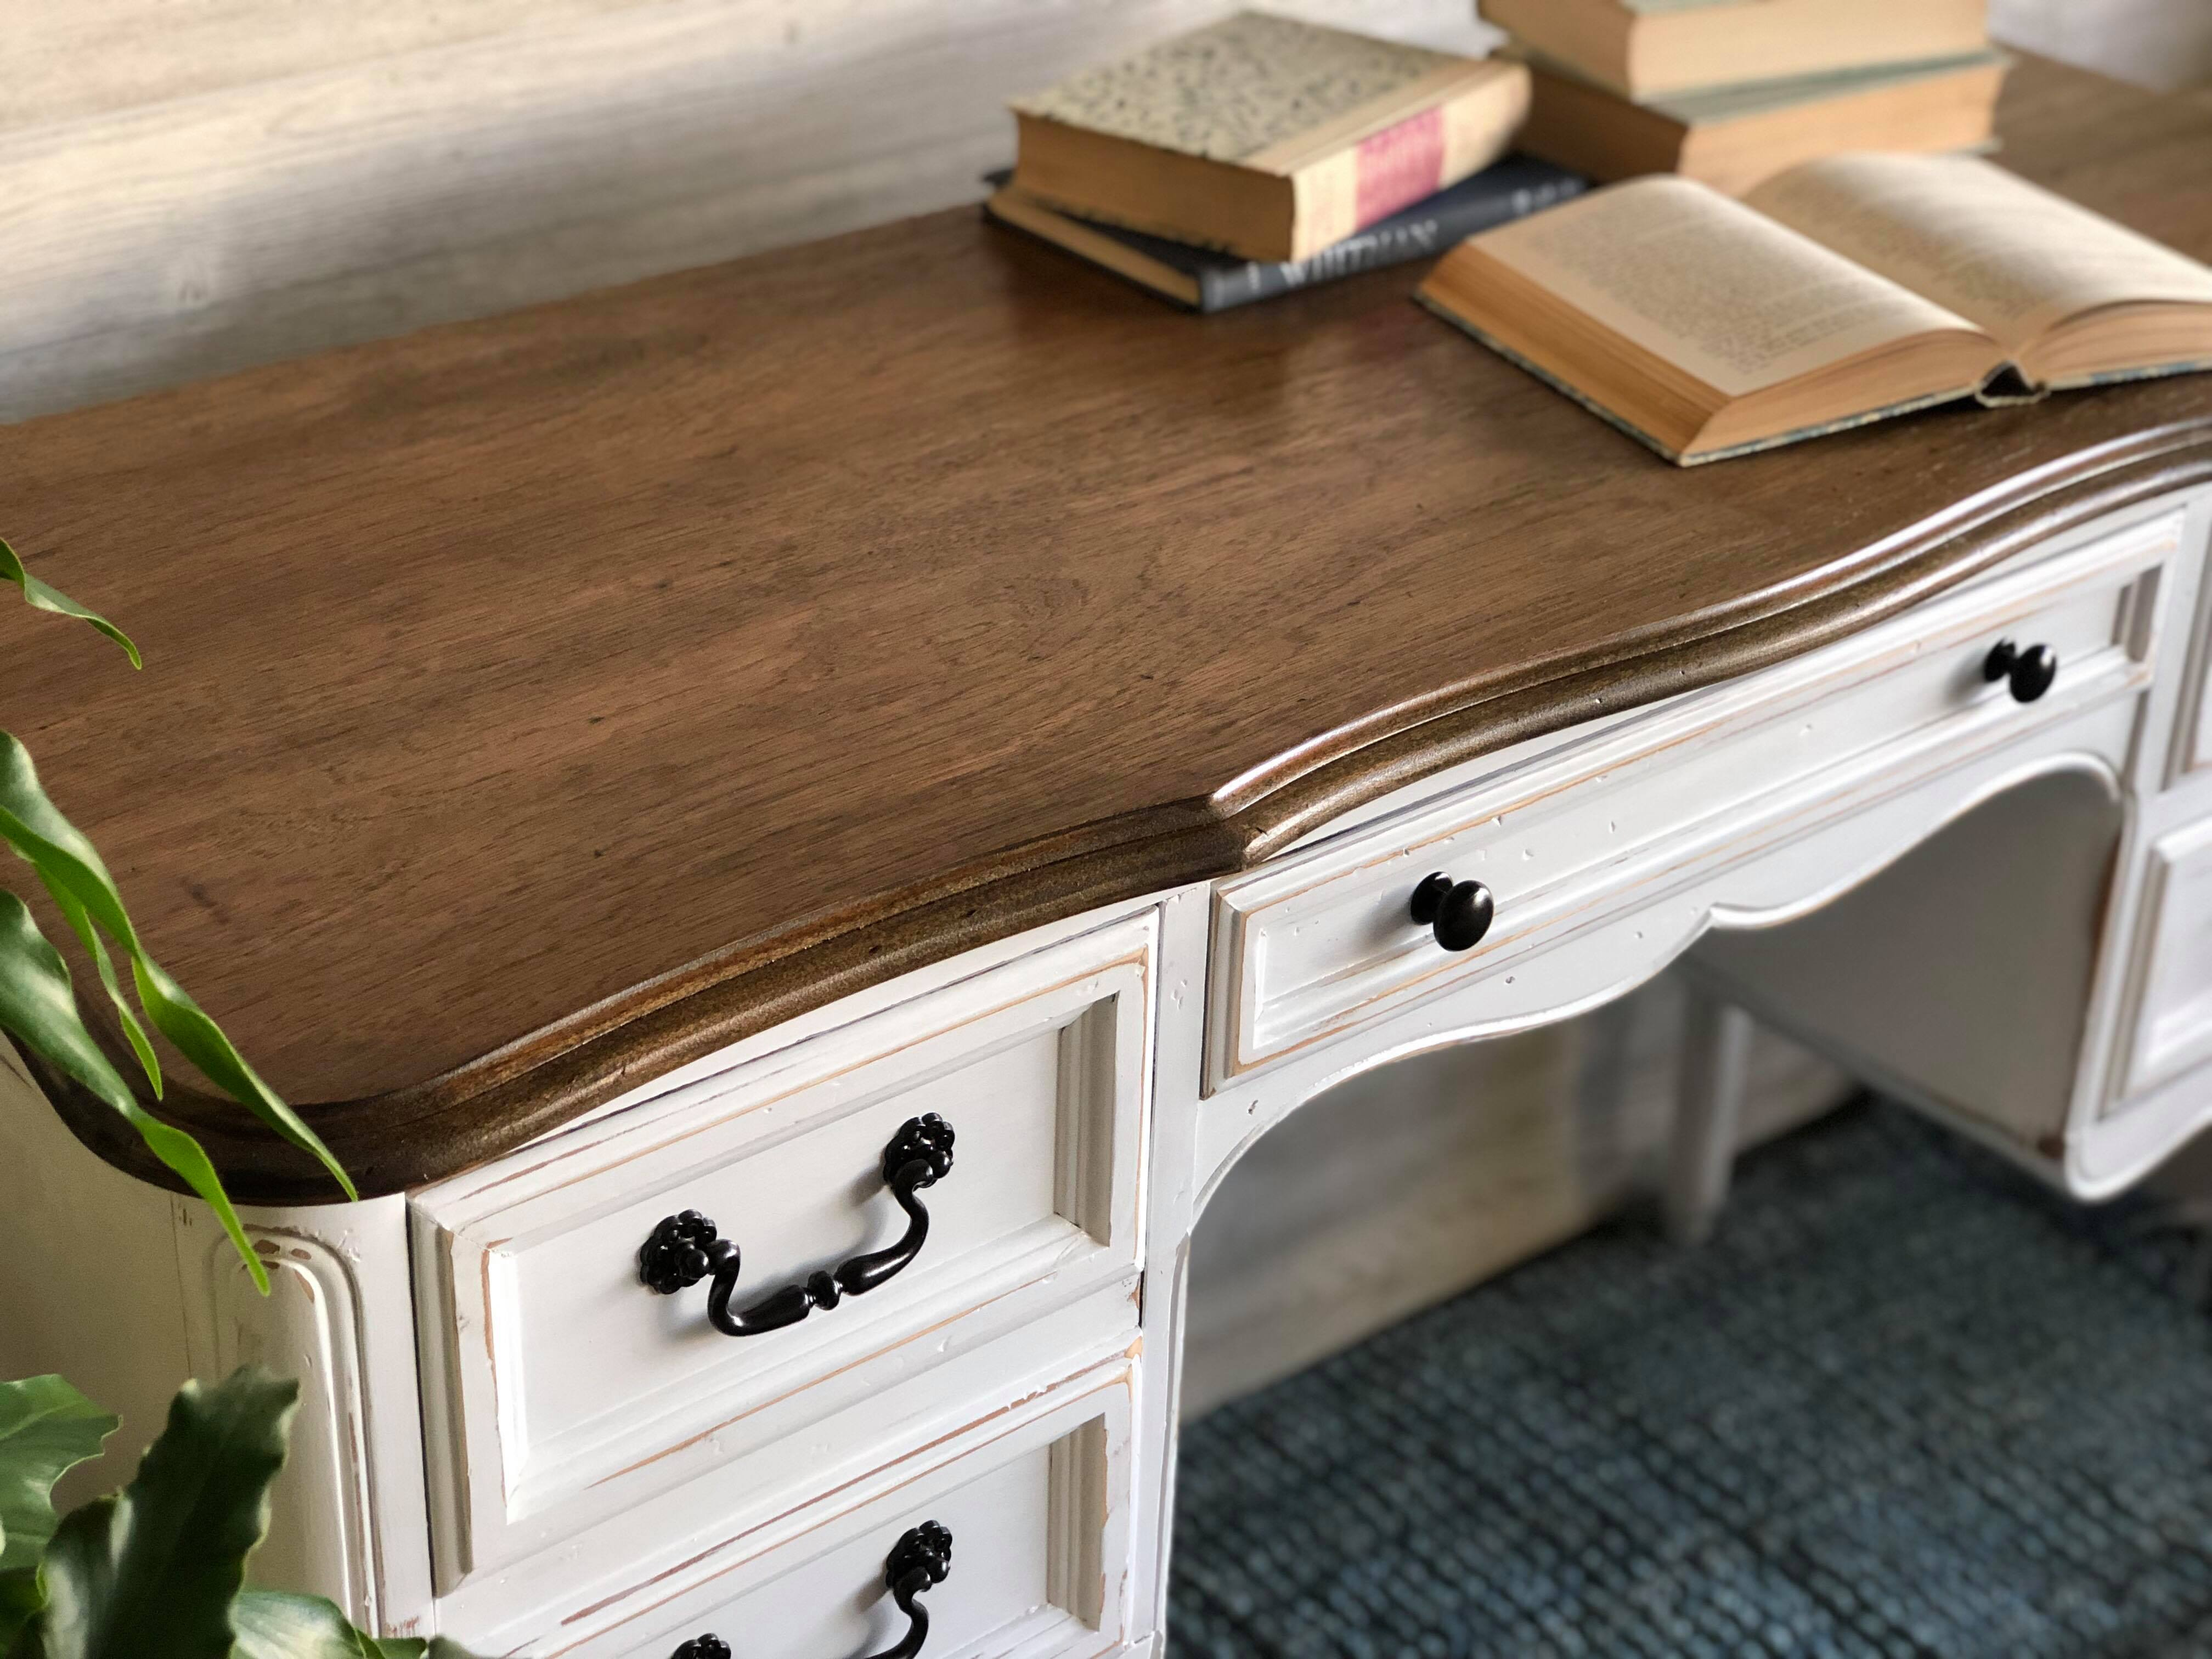 How to Sand, Stain, and Seal your furniture! Step by Step Guide to Beautifully Painted Furniture. Learn how to paint furniture like a pro!